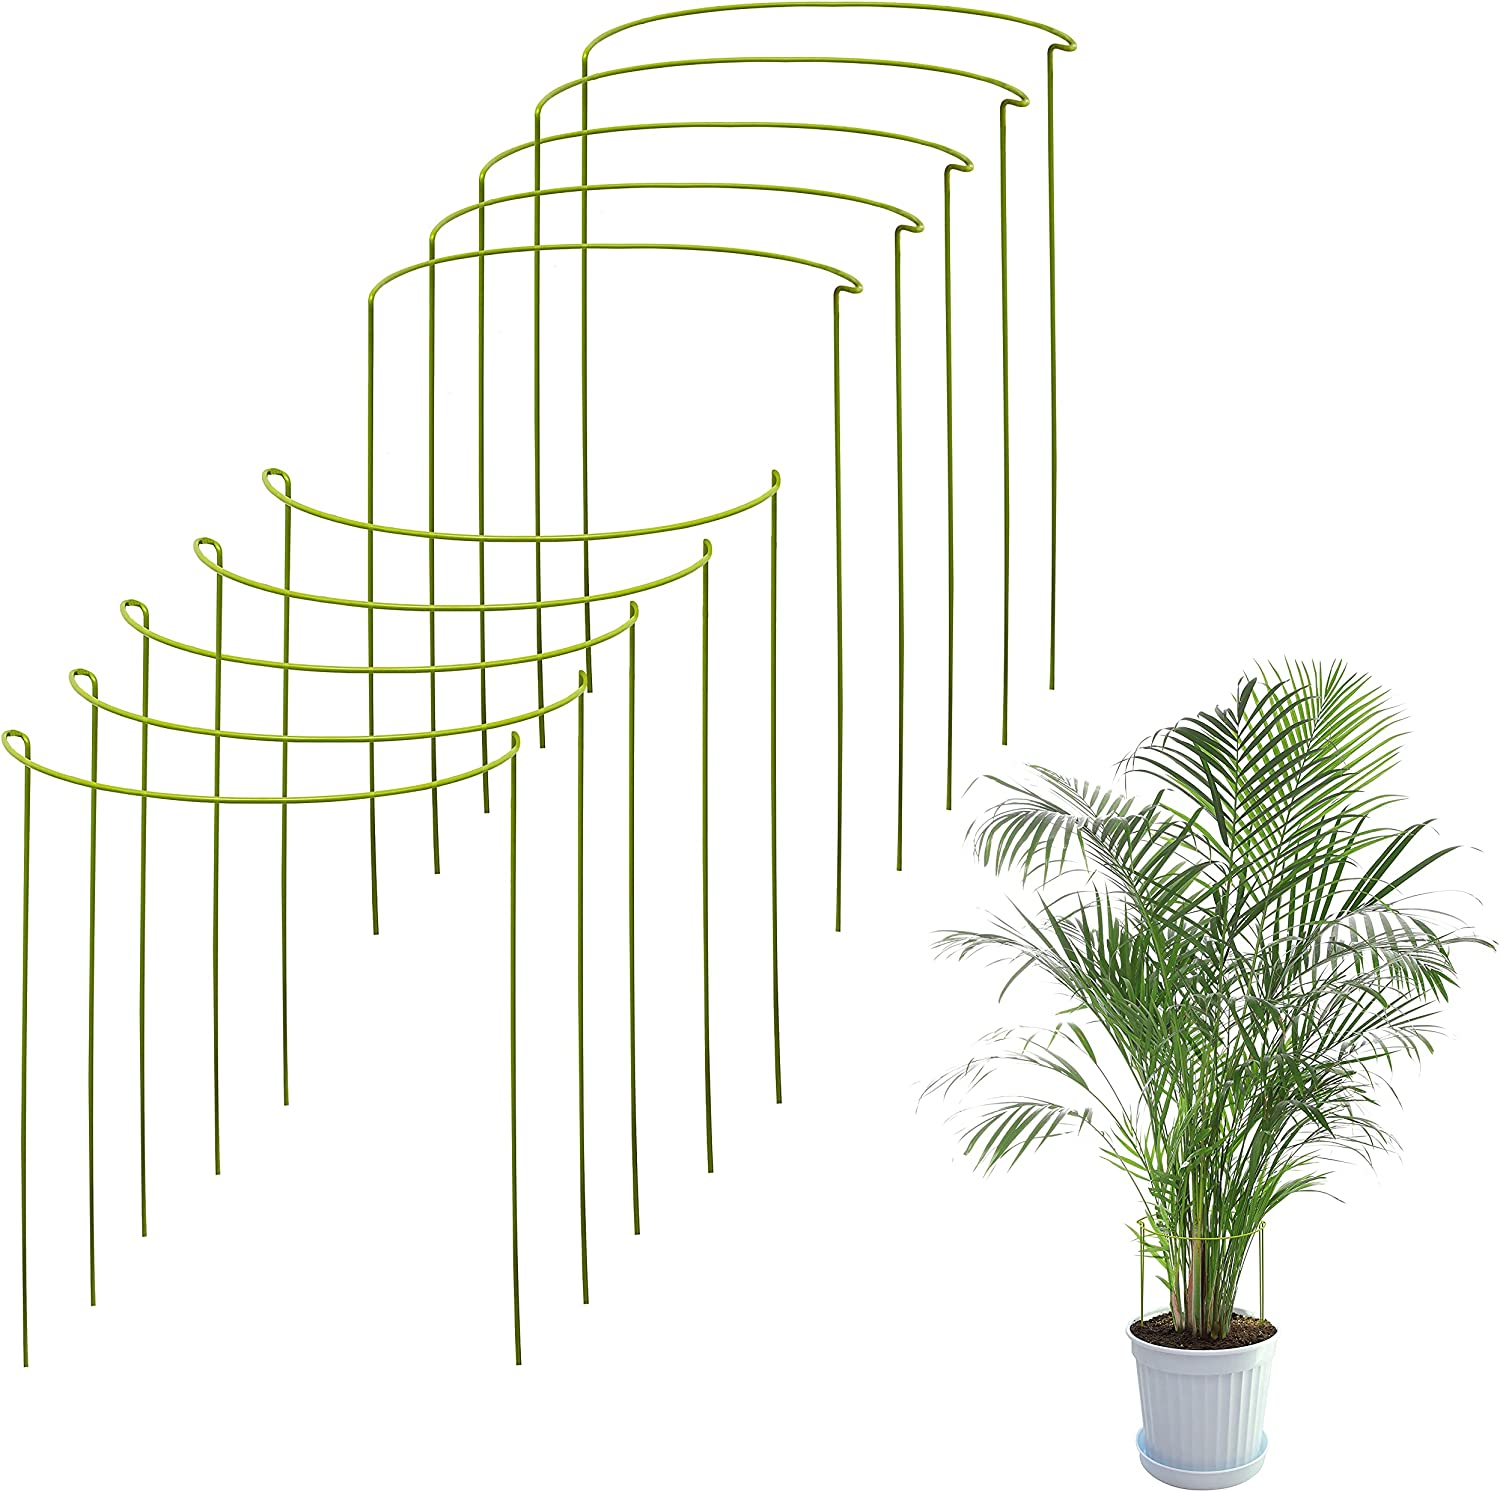 10 Pack Plant Stakes   Plant Supports for Tall Plants and Flowers   Green Support Cage   Help Your Plants Grow   Tomato Cages for Garden   Plant Sticks for Hydrangea, Peony, Perennials and More